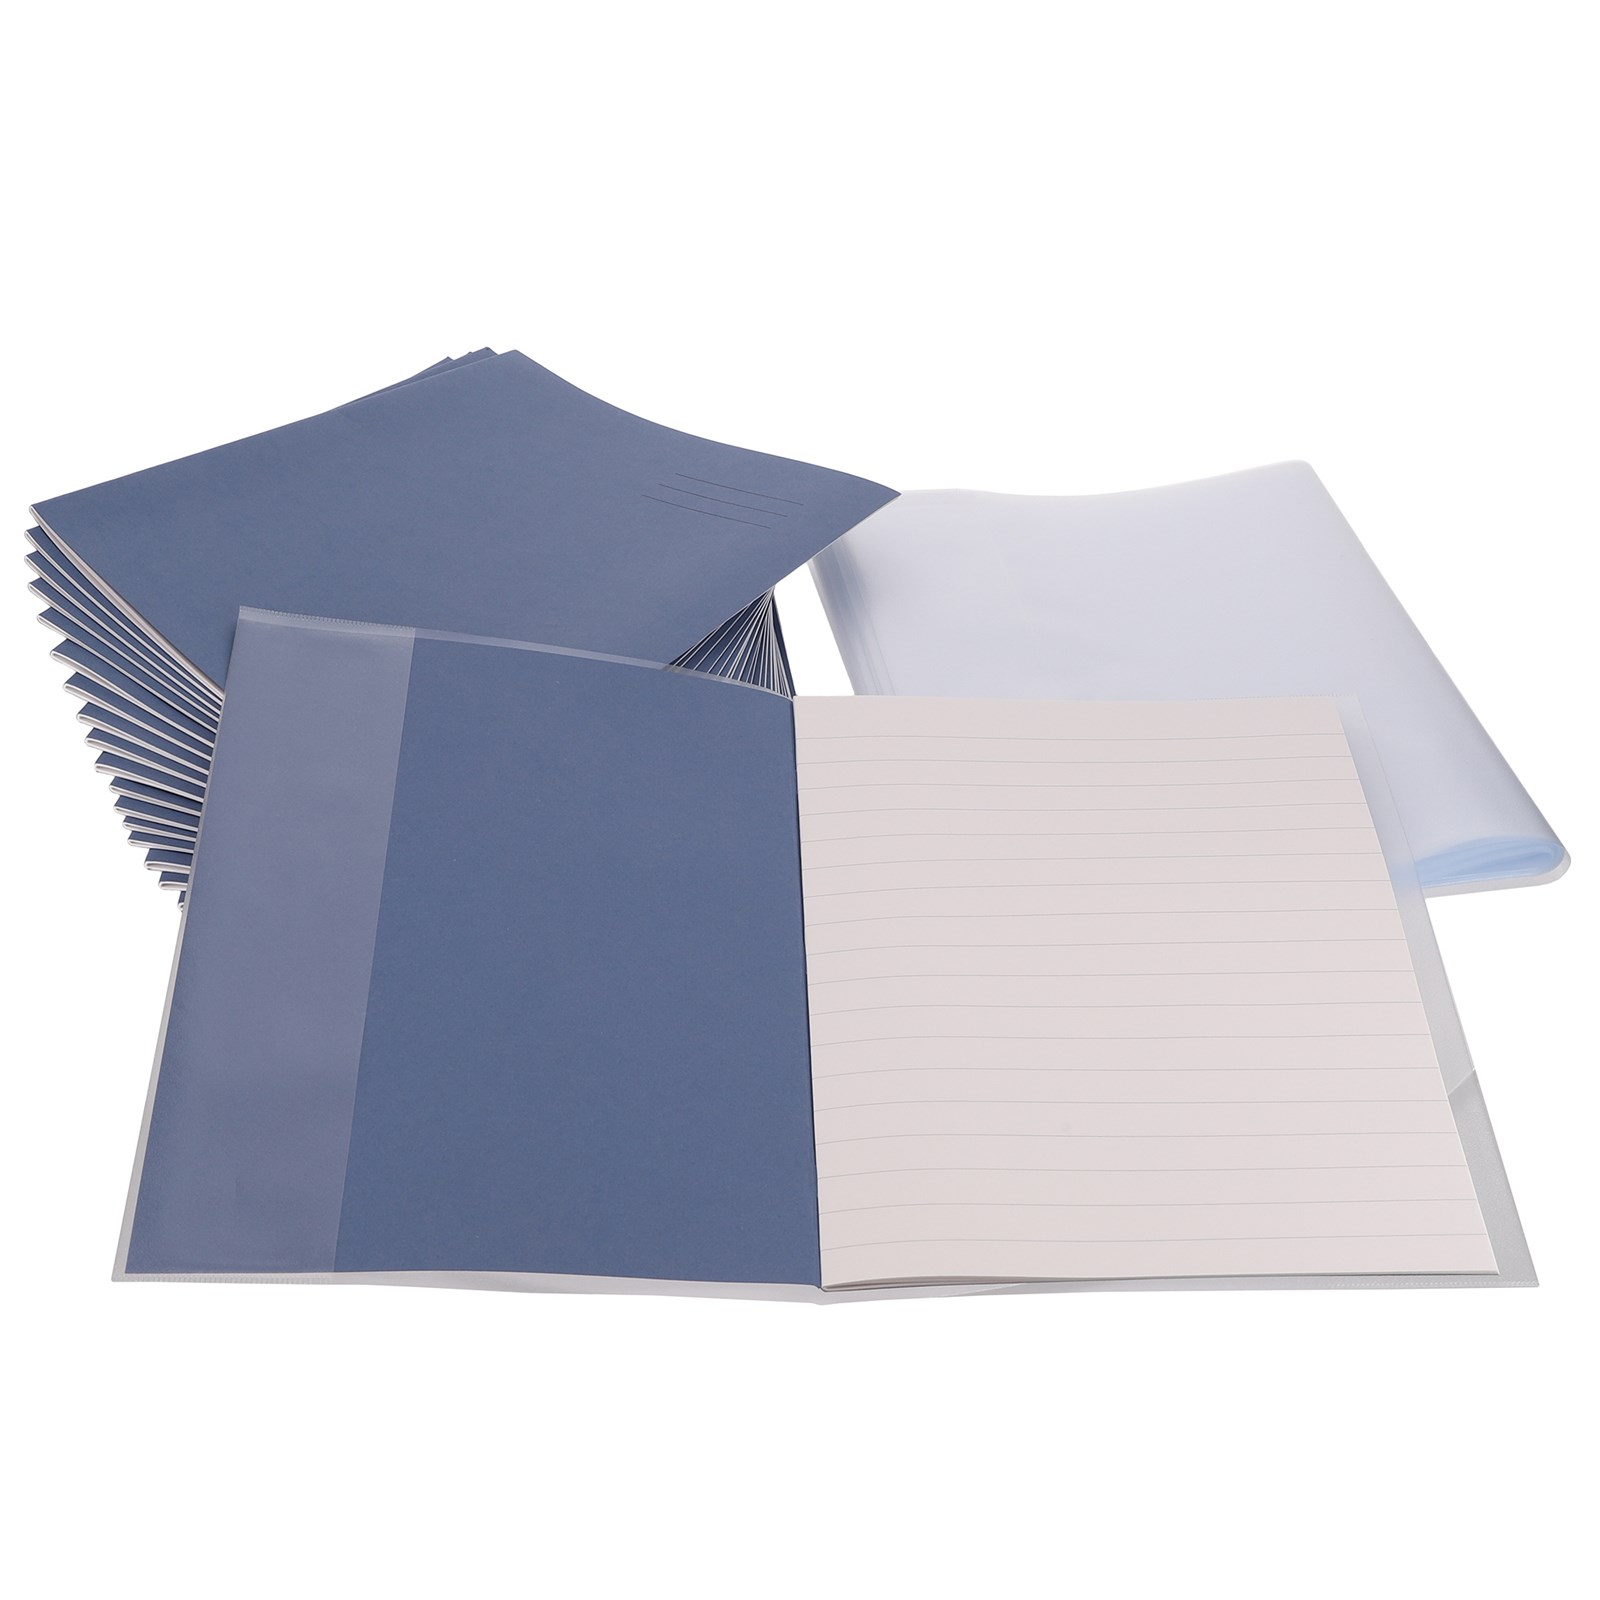 Classmates Blue A4 32 page 15mm Ruling Exercise Book Pack of 100 & Clear A4 Book Covering Pack of 100 **BUNDLE OFFER - SAVE UP TO